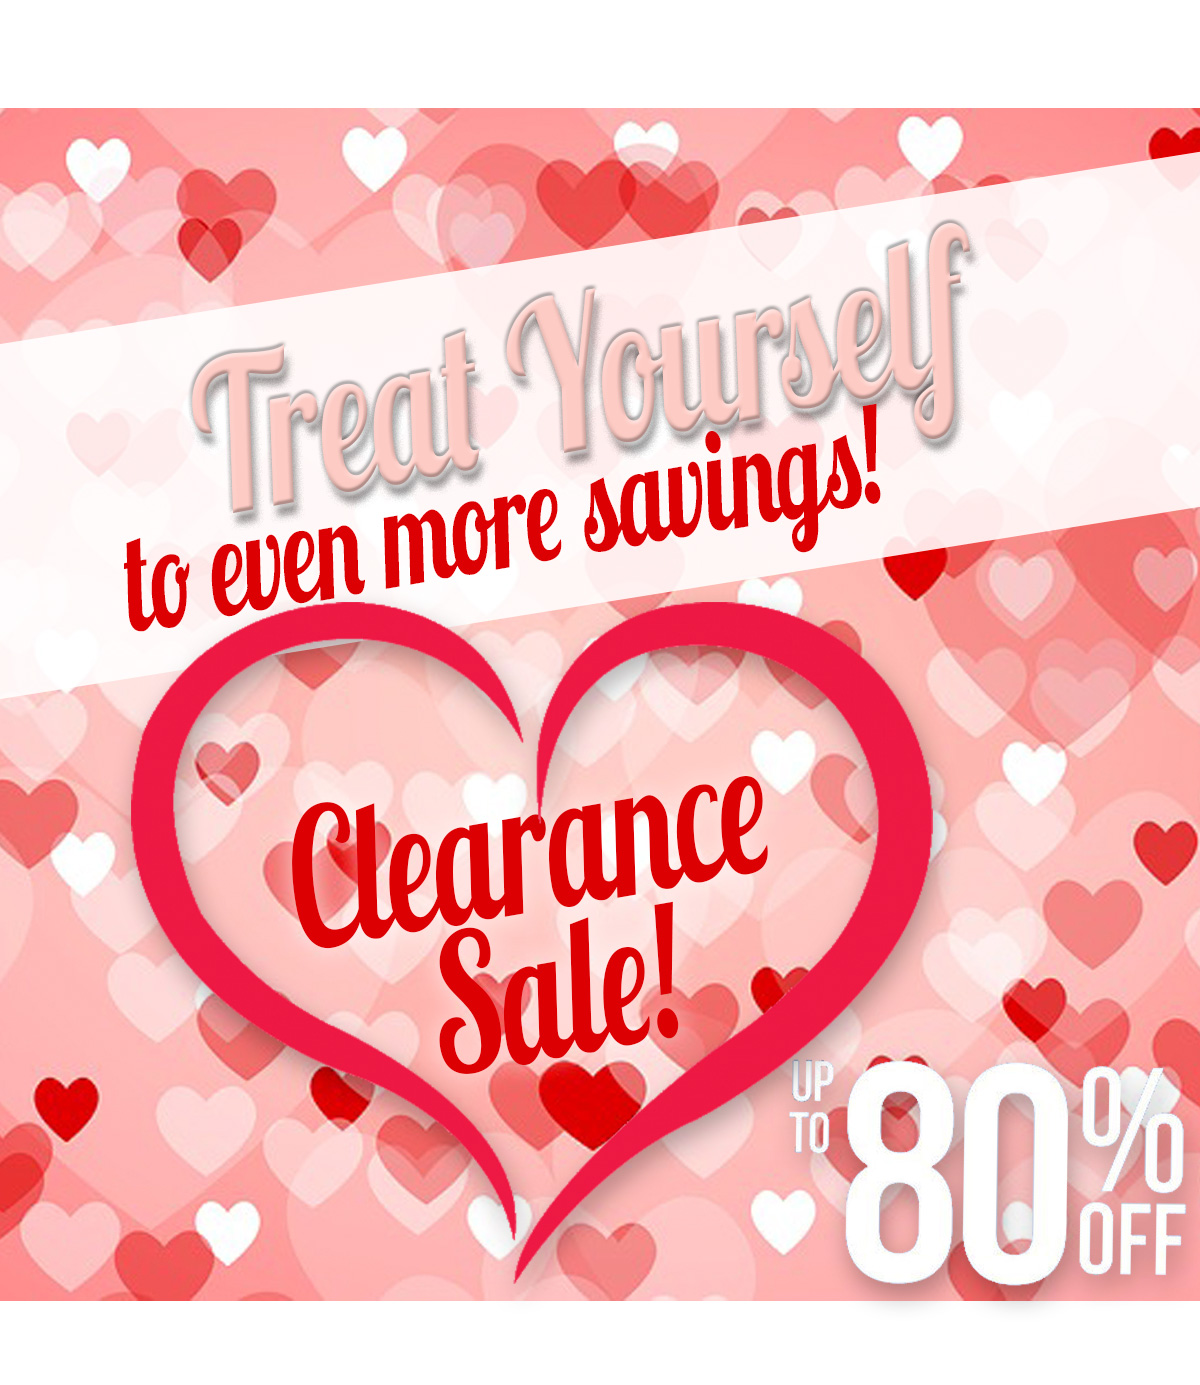 Save even more with our Clearance Items - hurry ---- while supplies last up to 80% off!